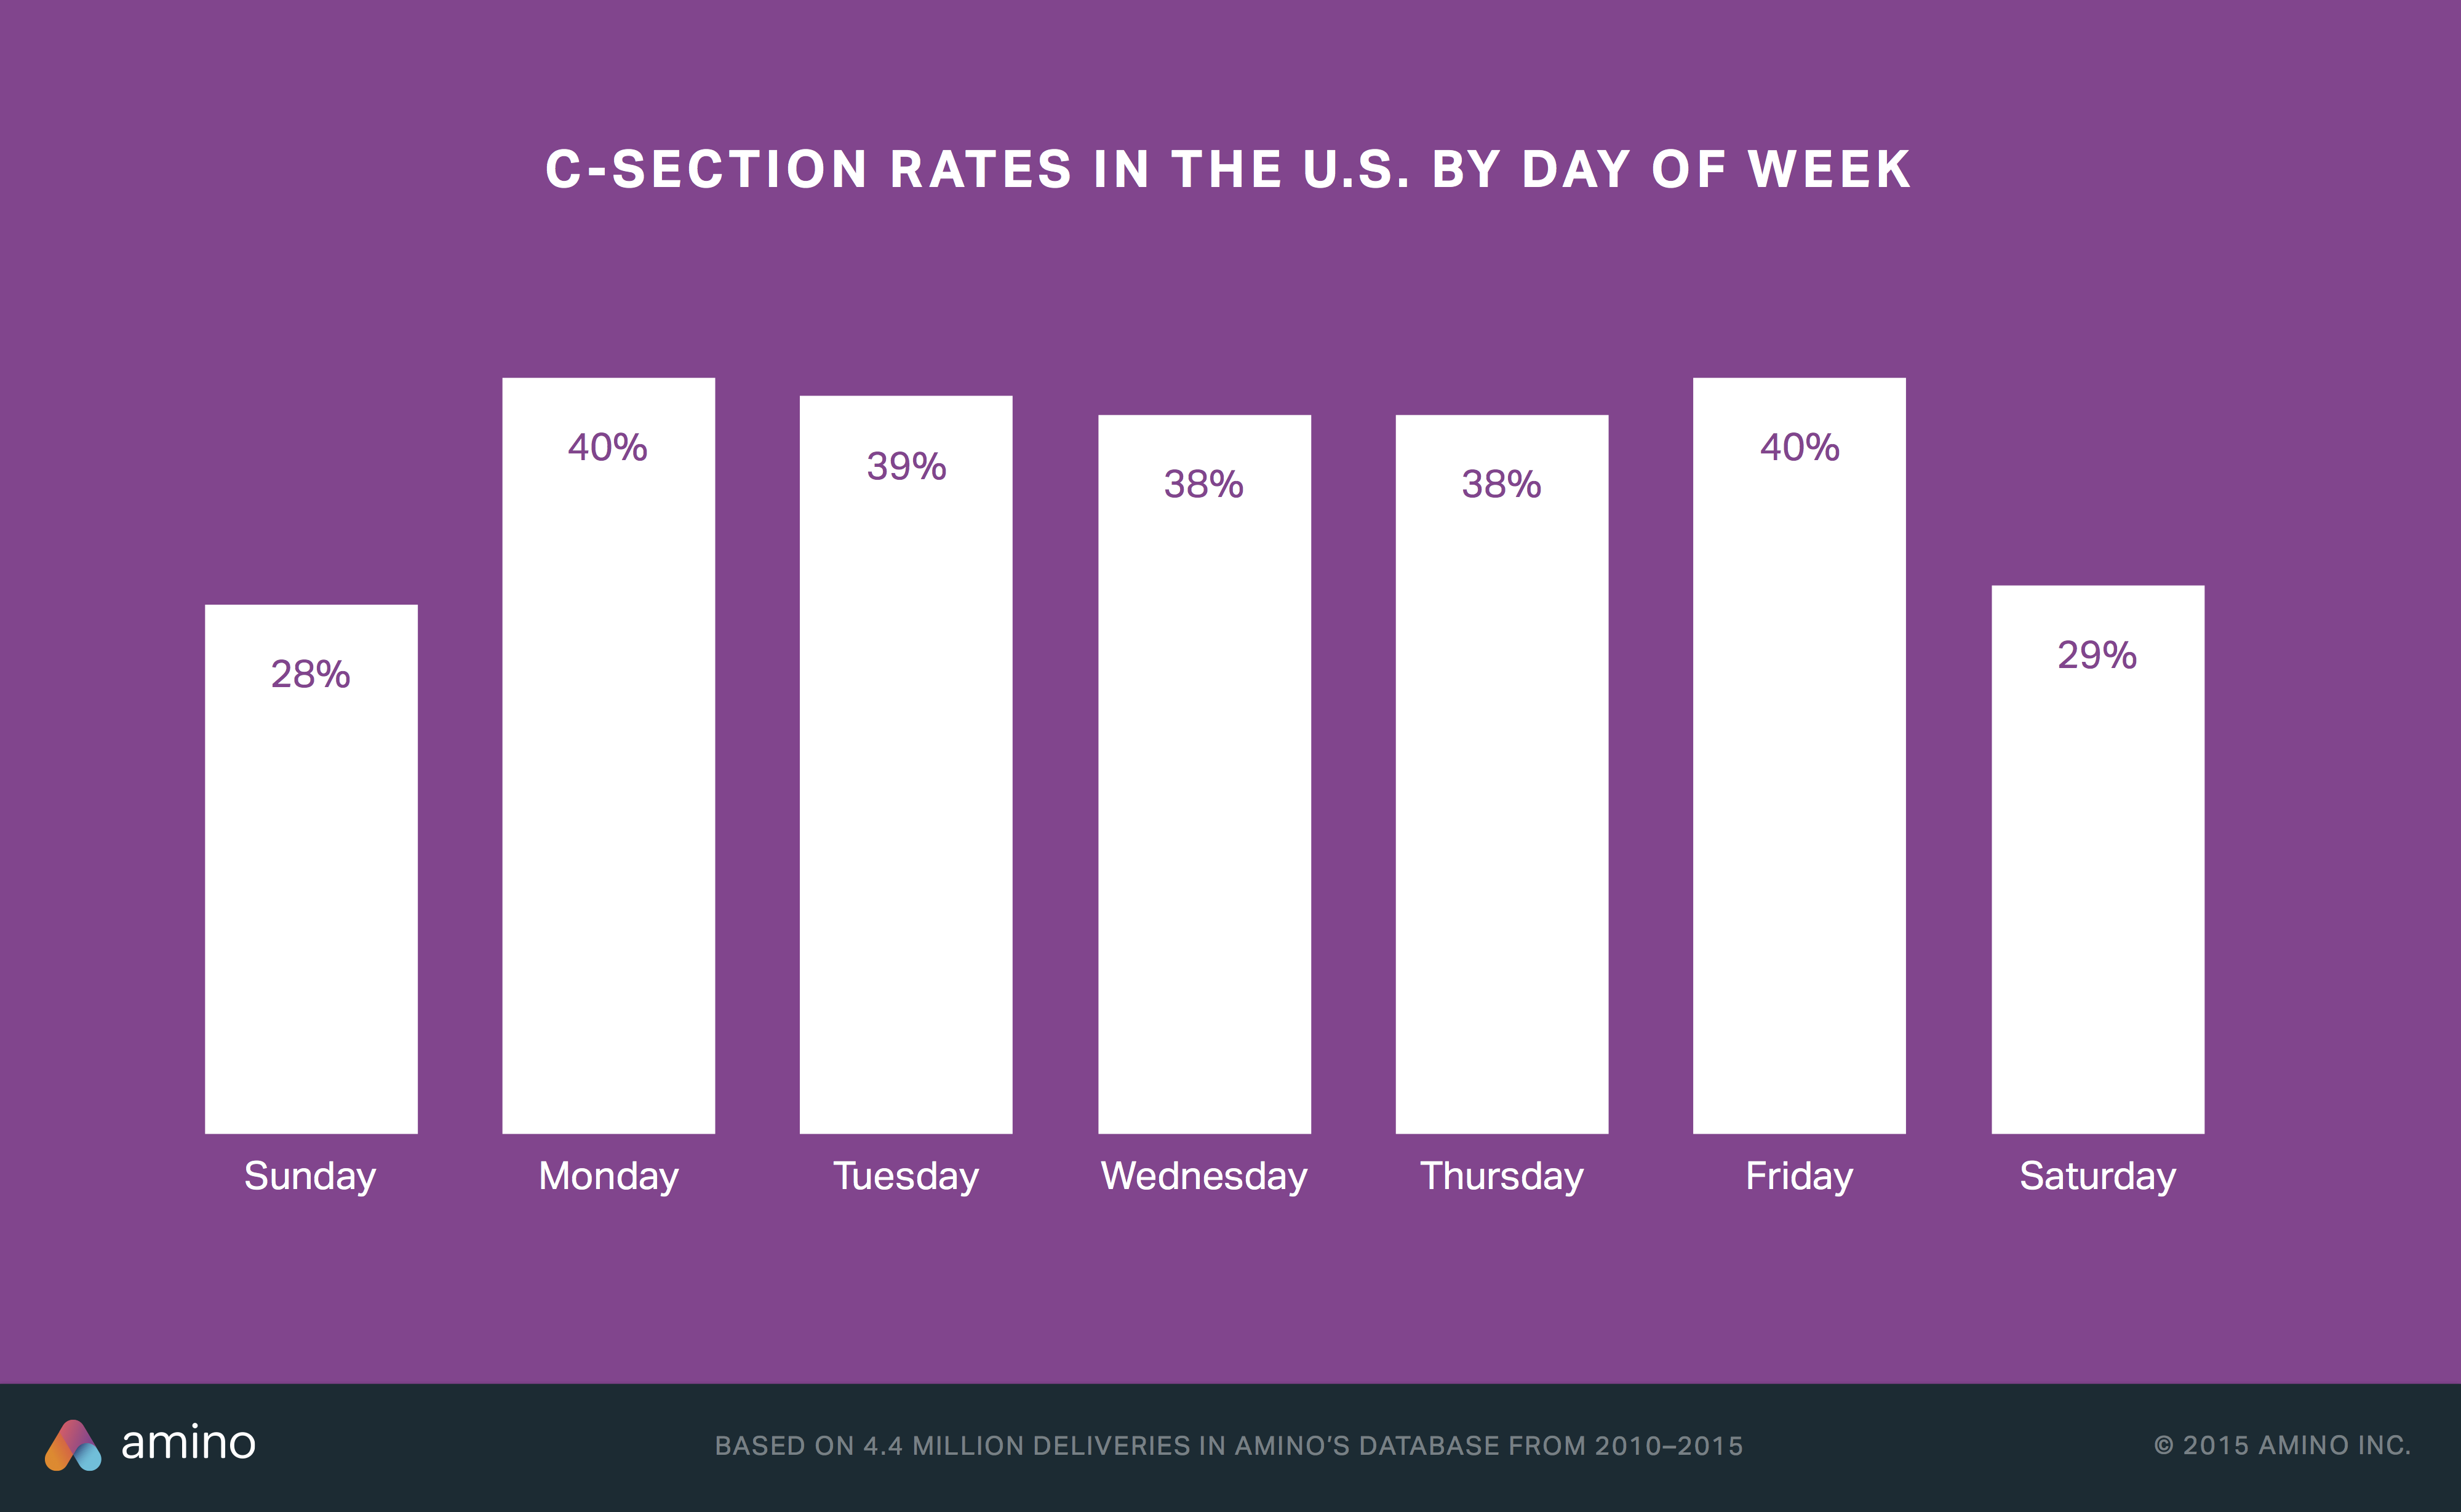 C-section rates by day of week